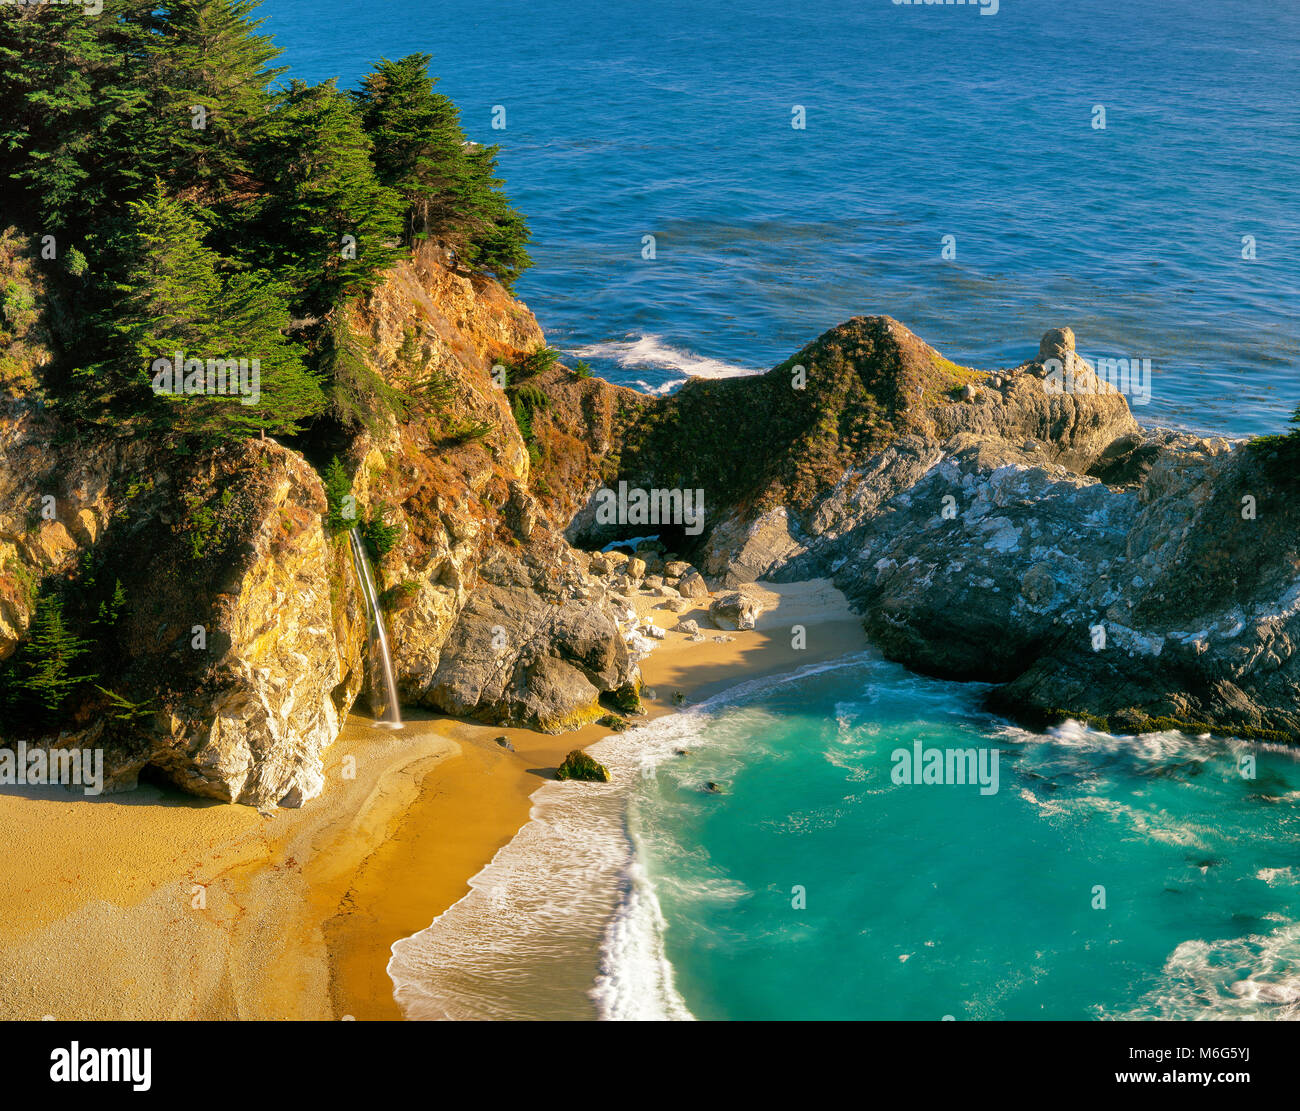 McWay Falls, Pfeiffer-Burns State Park, Big Sur, Monterey County, California - Stock Image